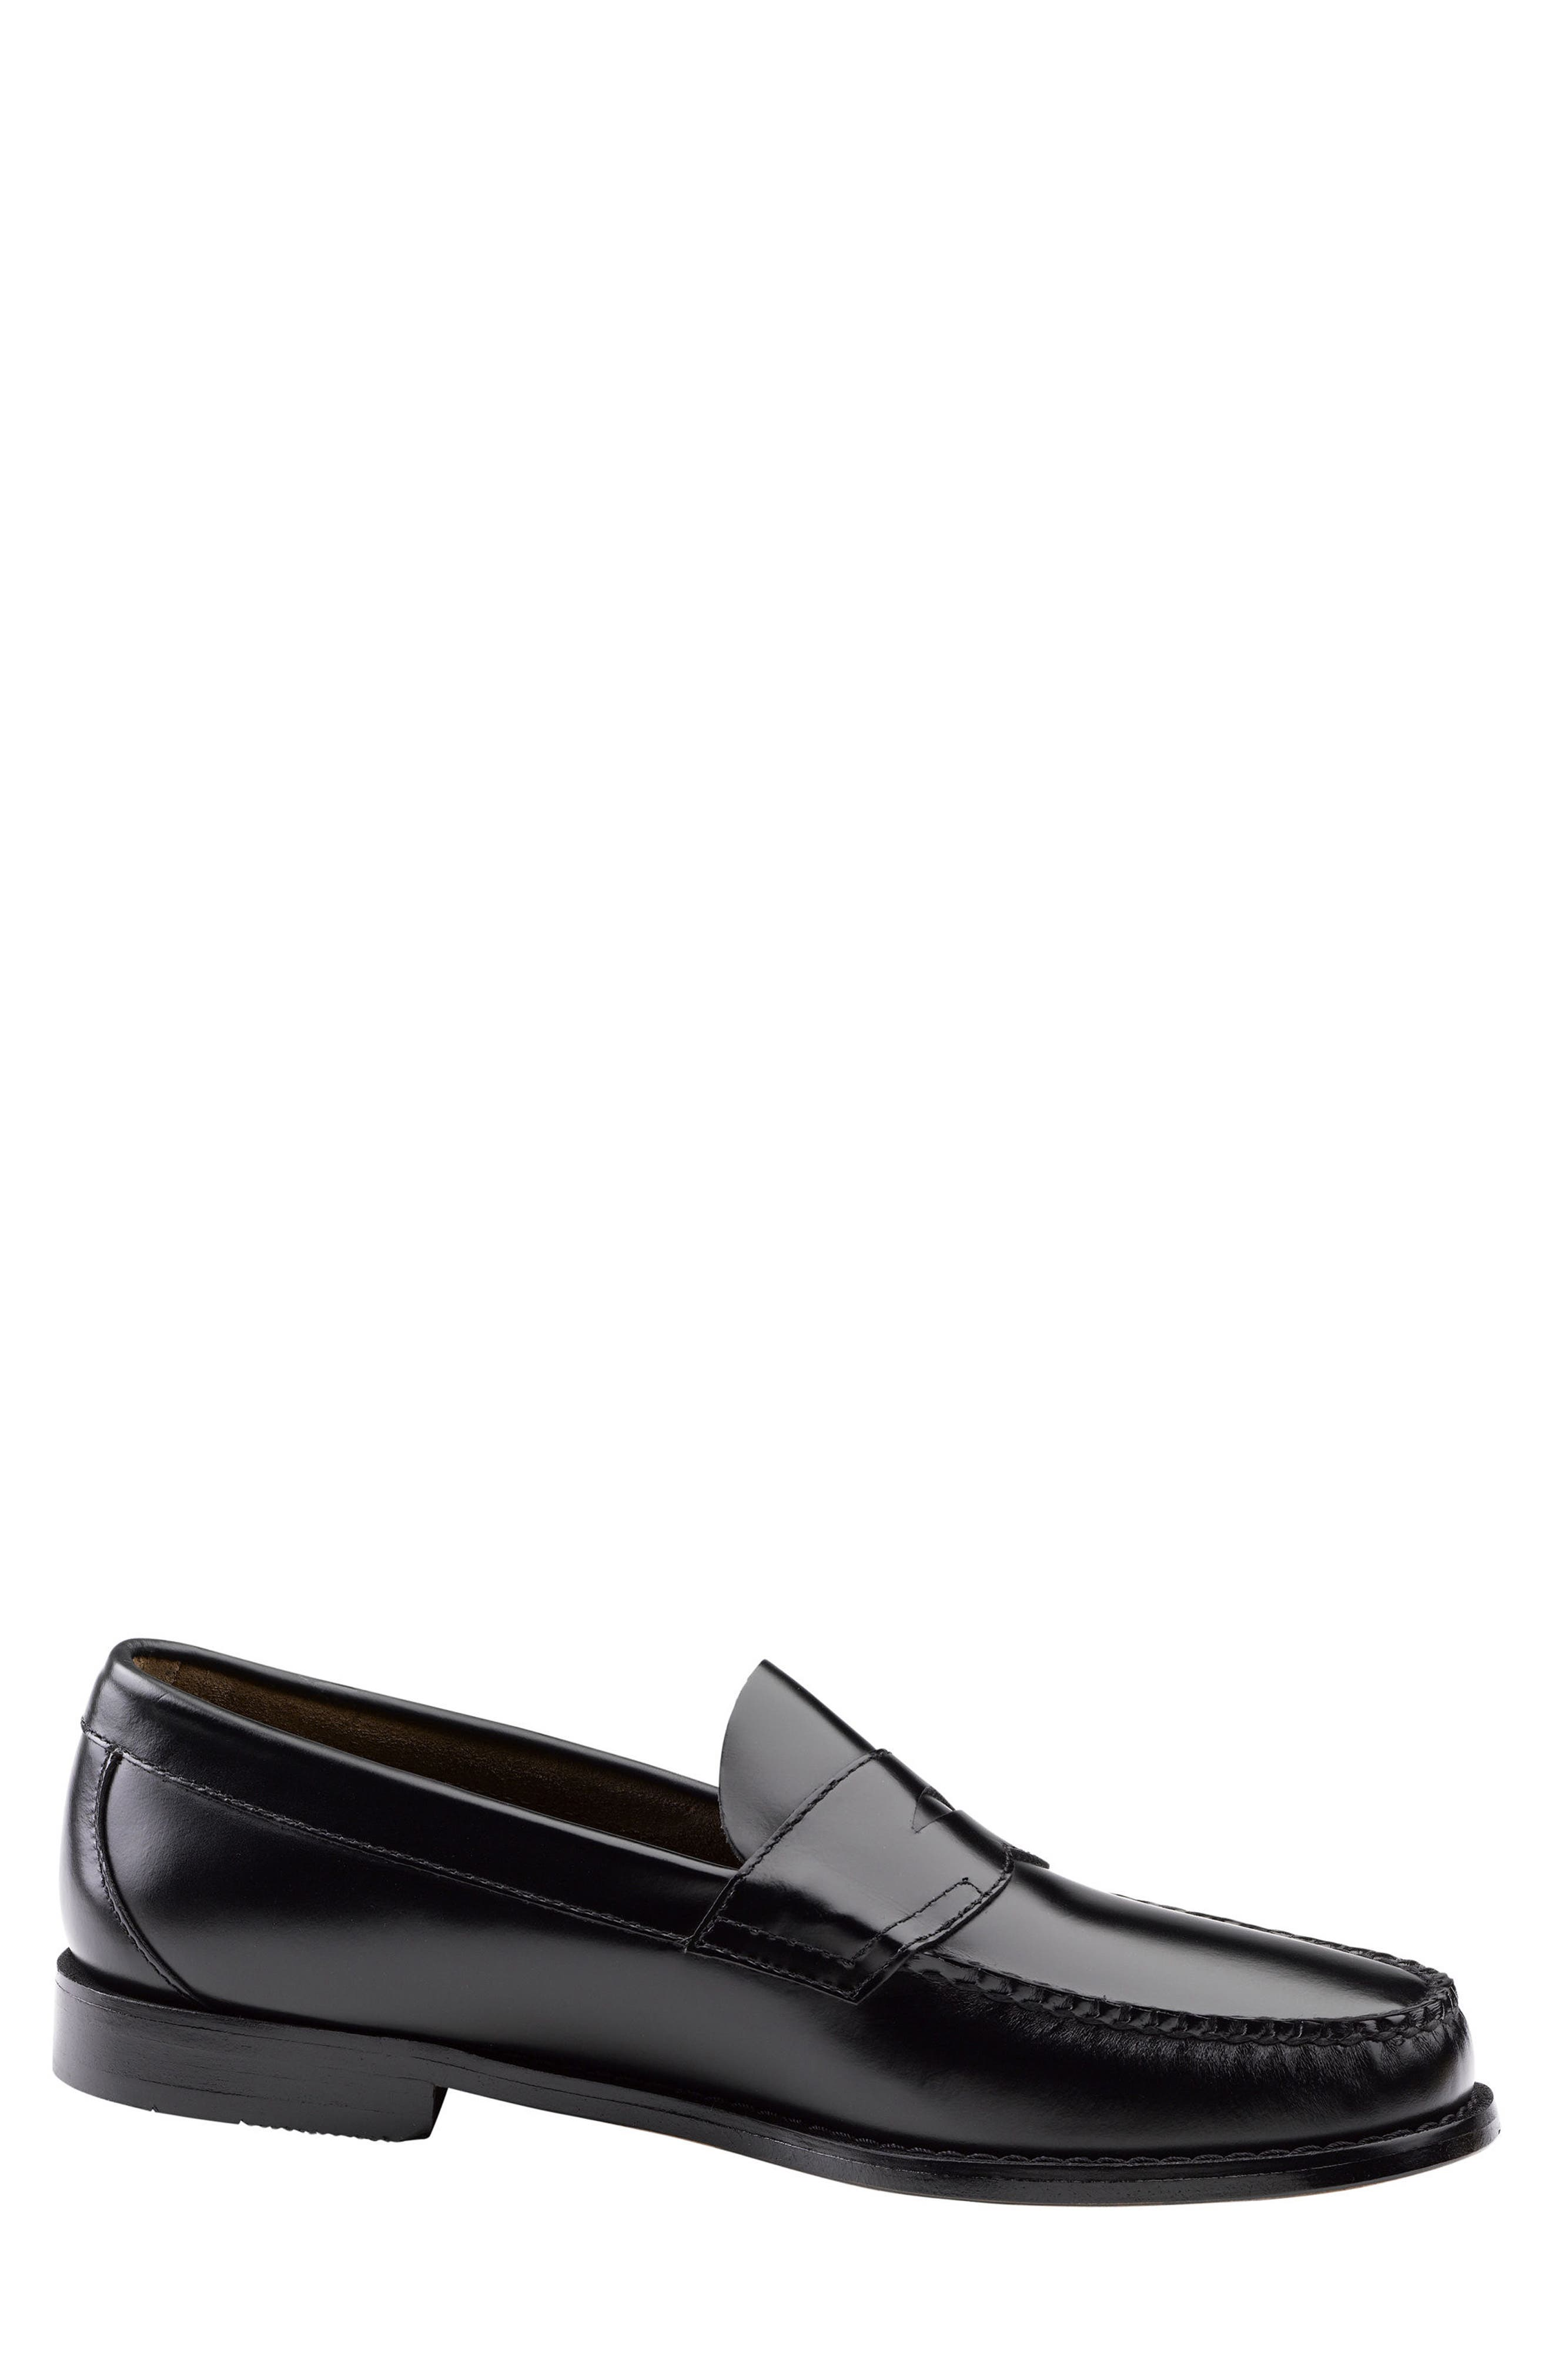 Logan Penny Loafer,                             Alternate thumbnail 3, color,                             001